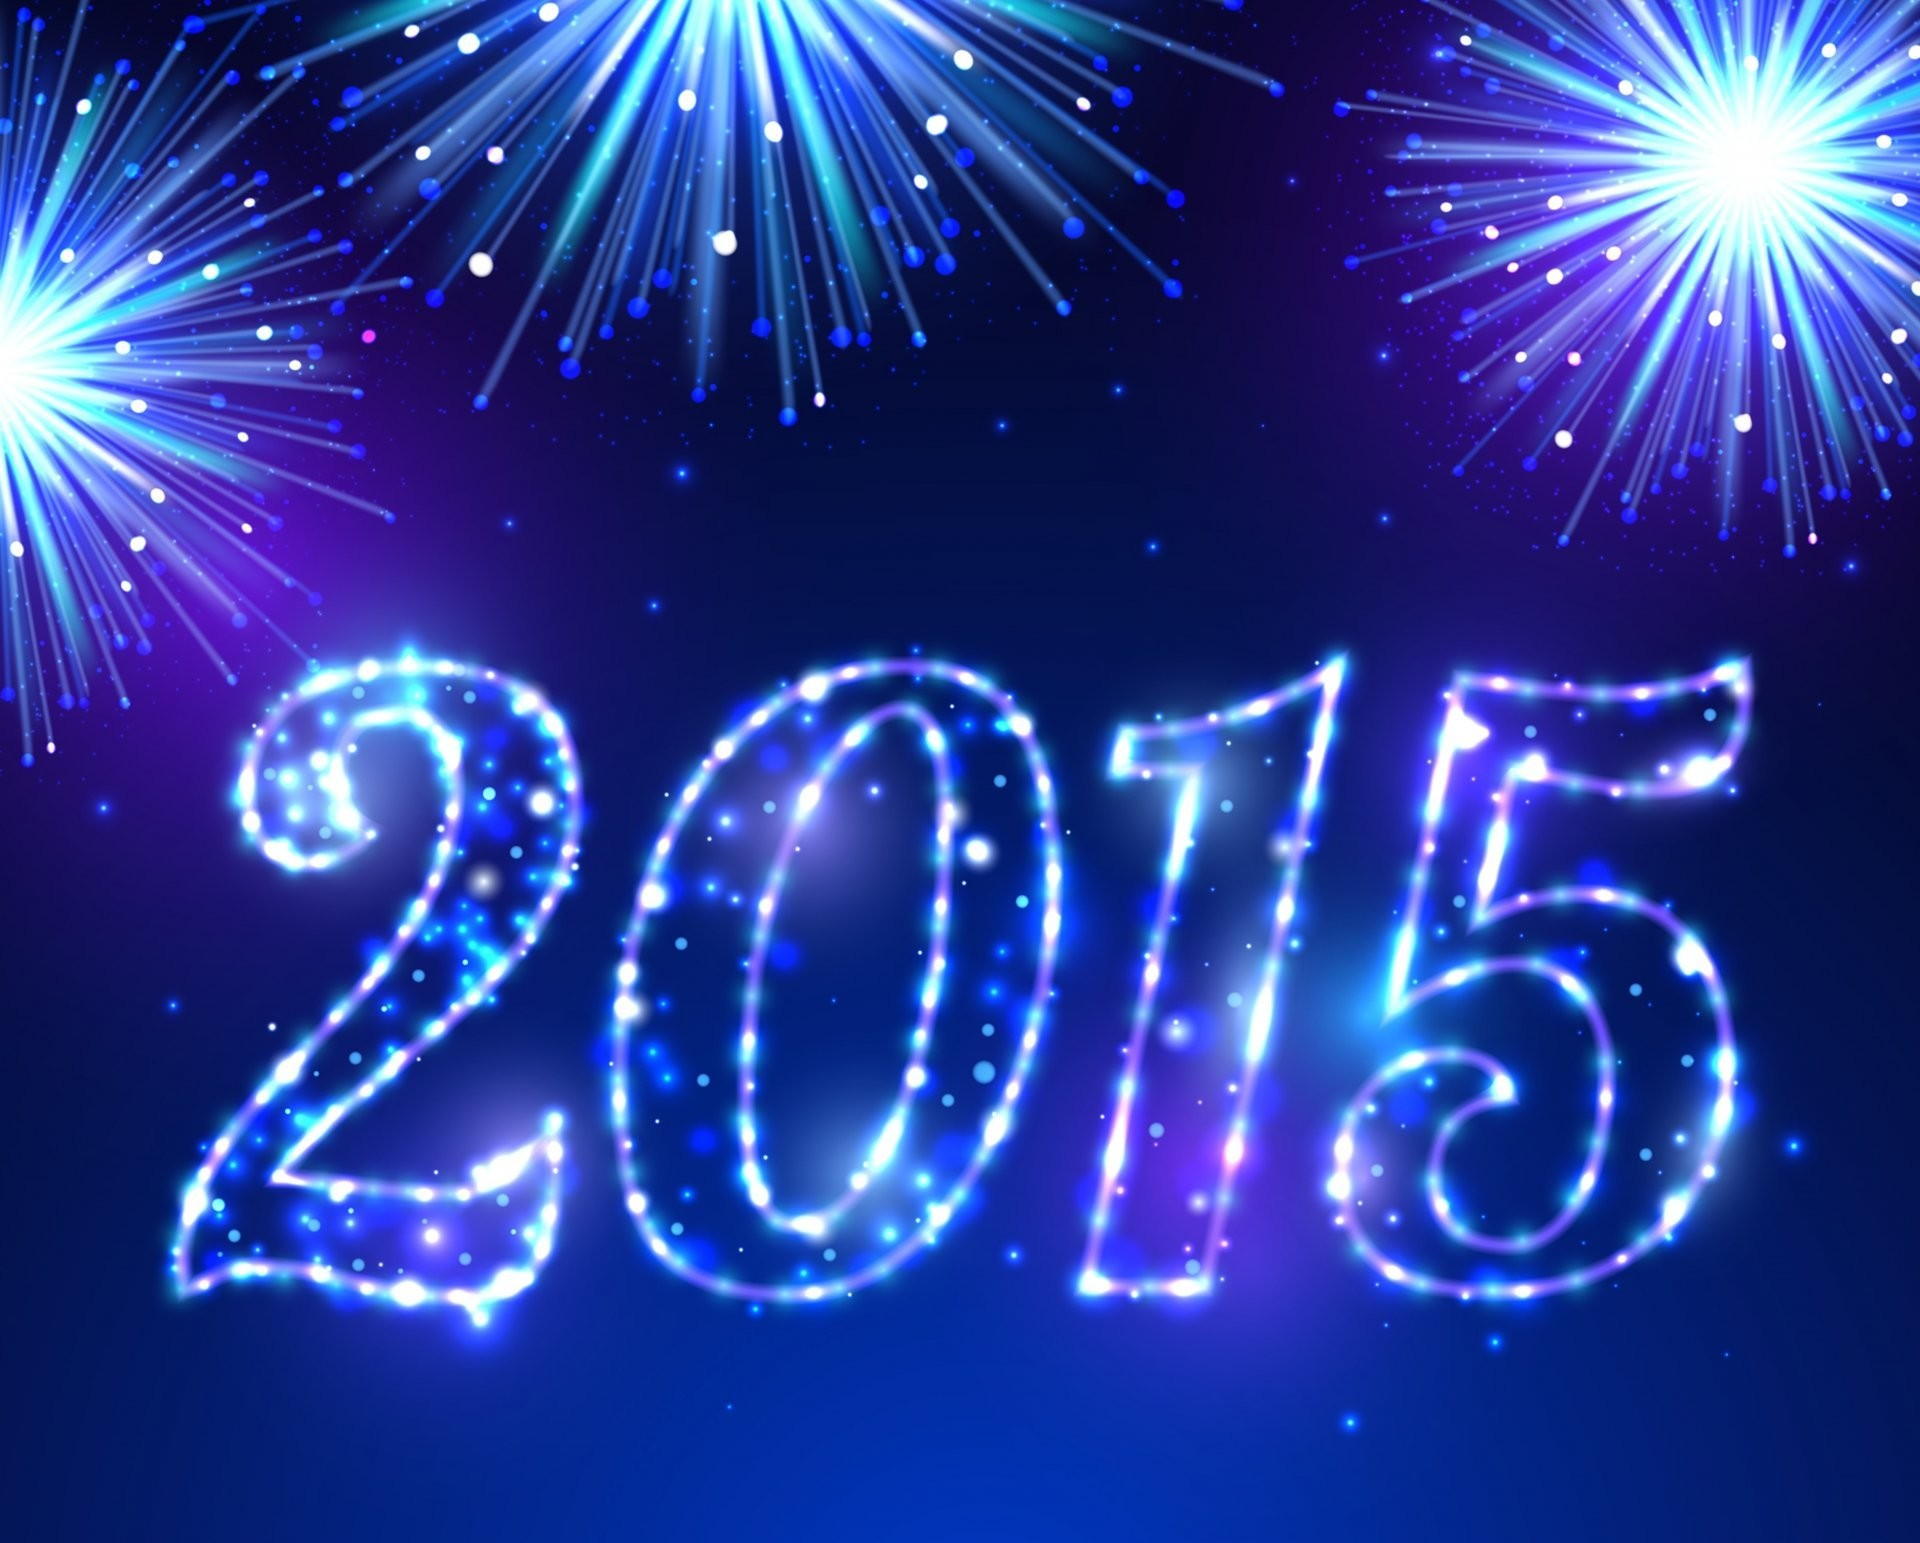 happy new year 2015 blue sparkle fireworks new year salute